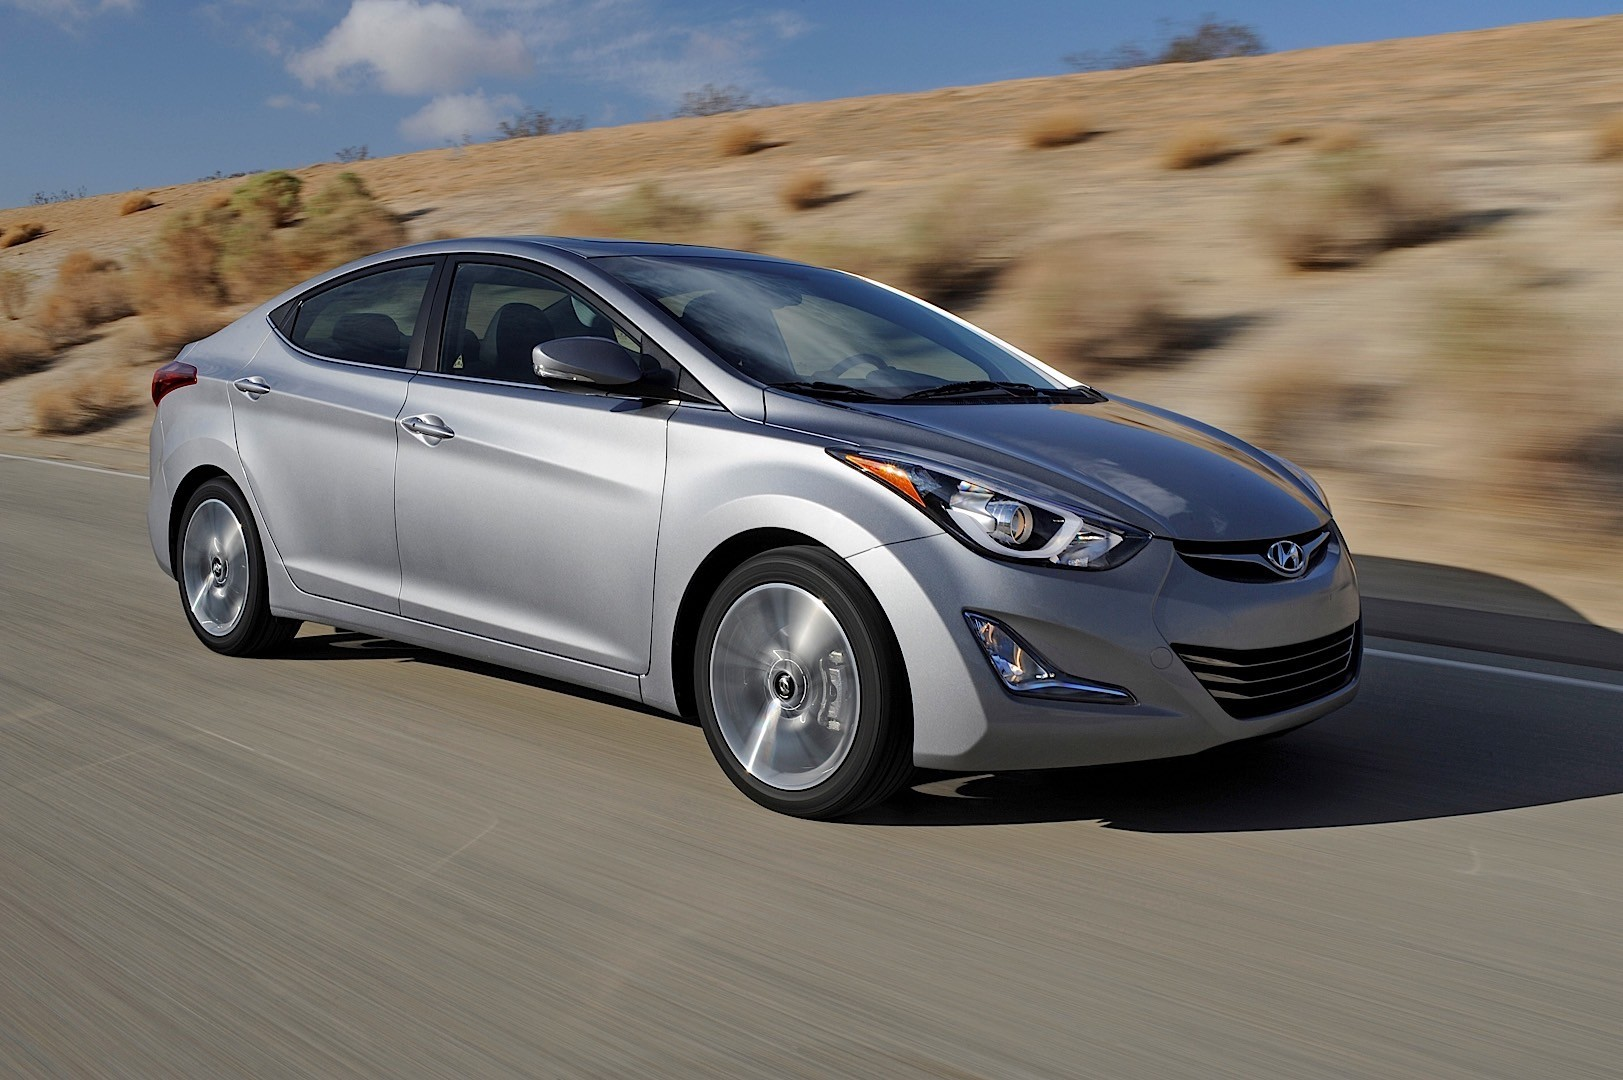 hyundai recalls 2013 elantra over brake pedal stopper pad autoevolution. Black Bedroom Furniture Sets. Home Design Ideas